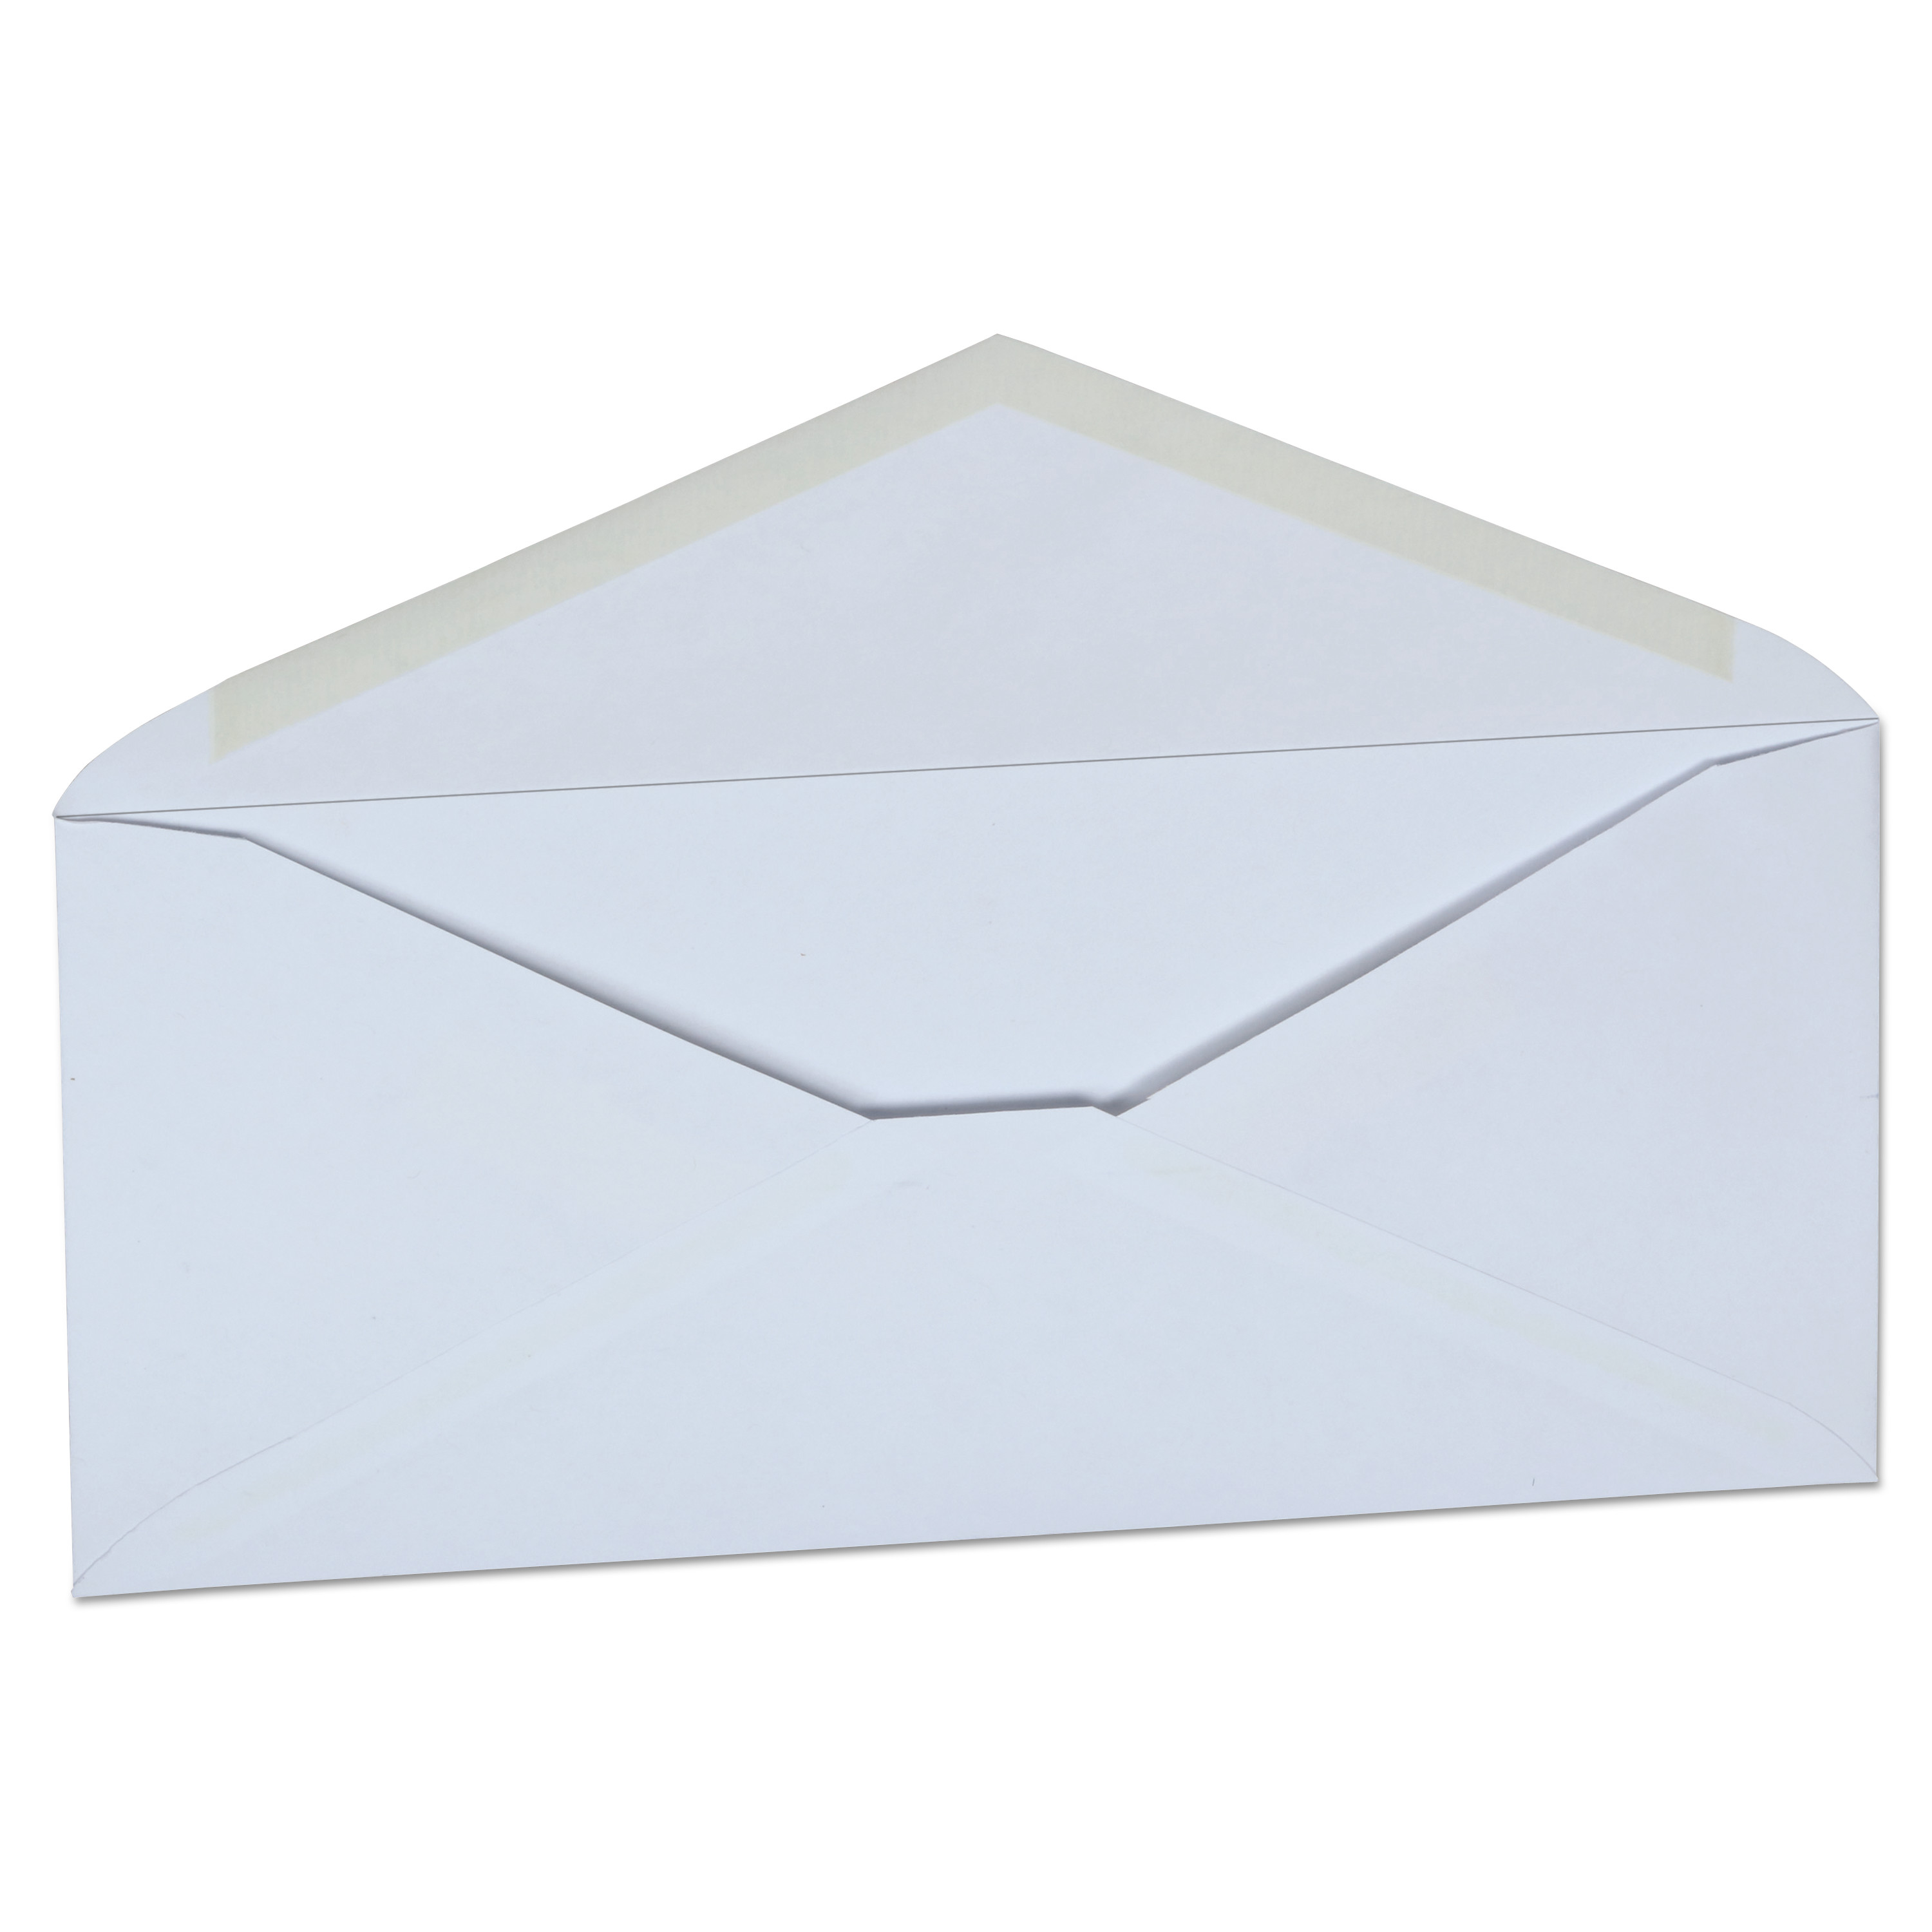 Office Impressions Plain Envelopes, #10, 4 1/8 x 9 1/2, White, 500/Box -OFF82292